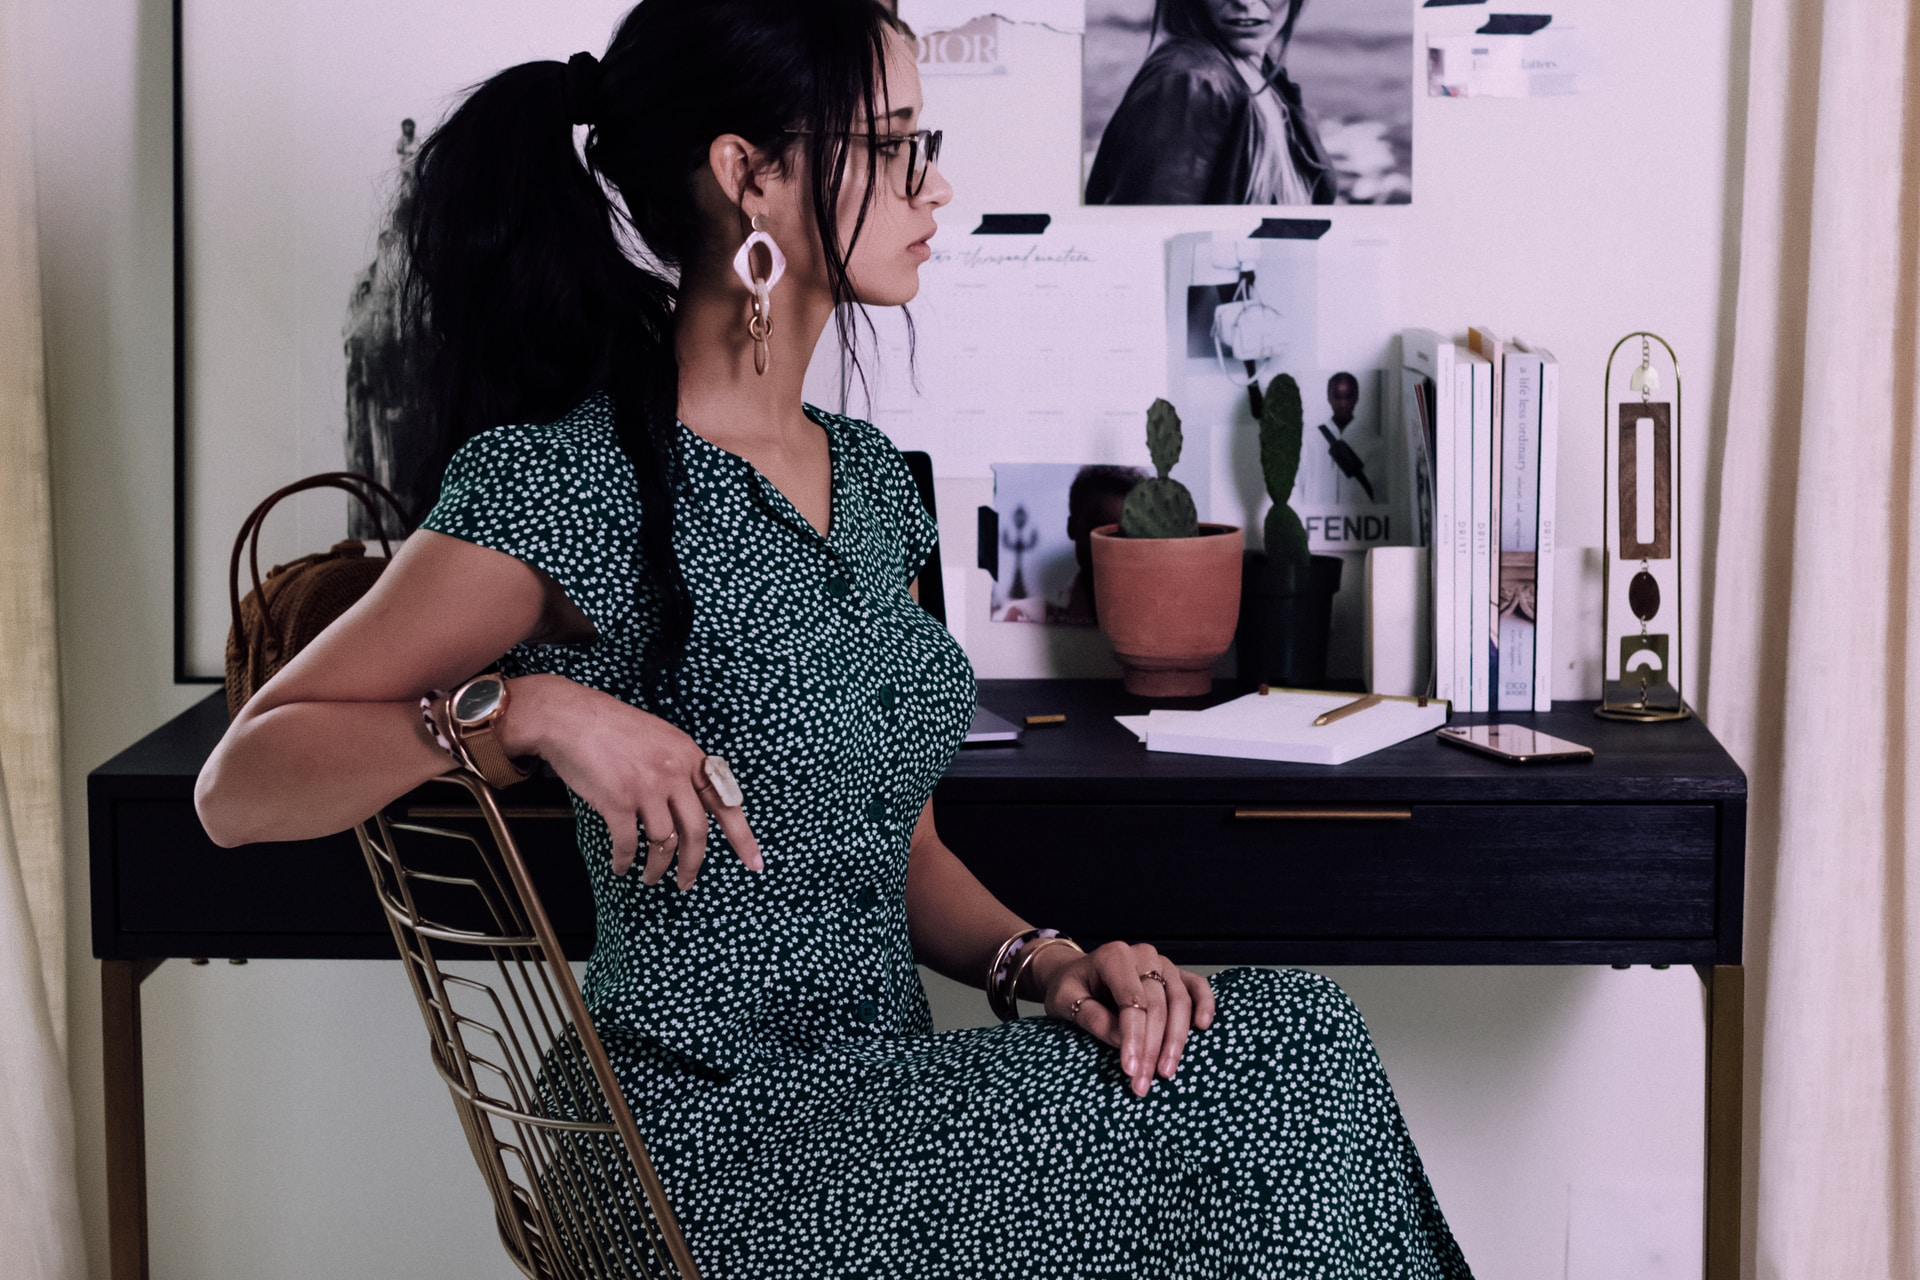 woman sitting on chair with cross legs